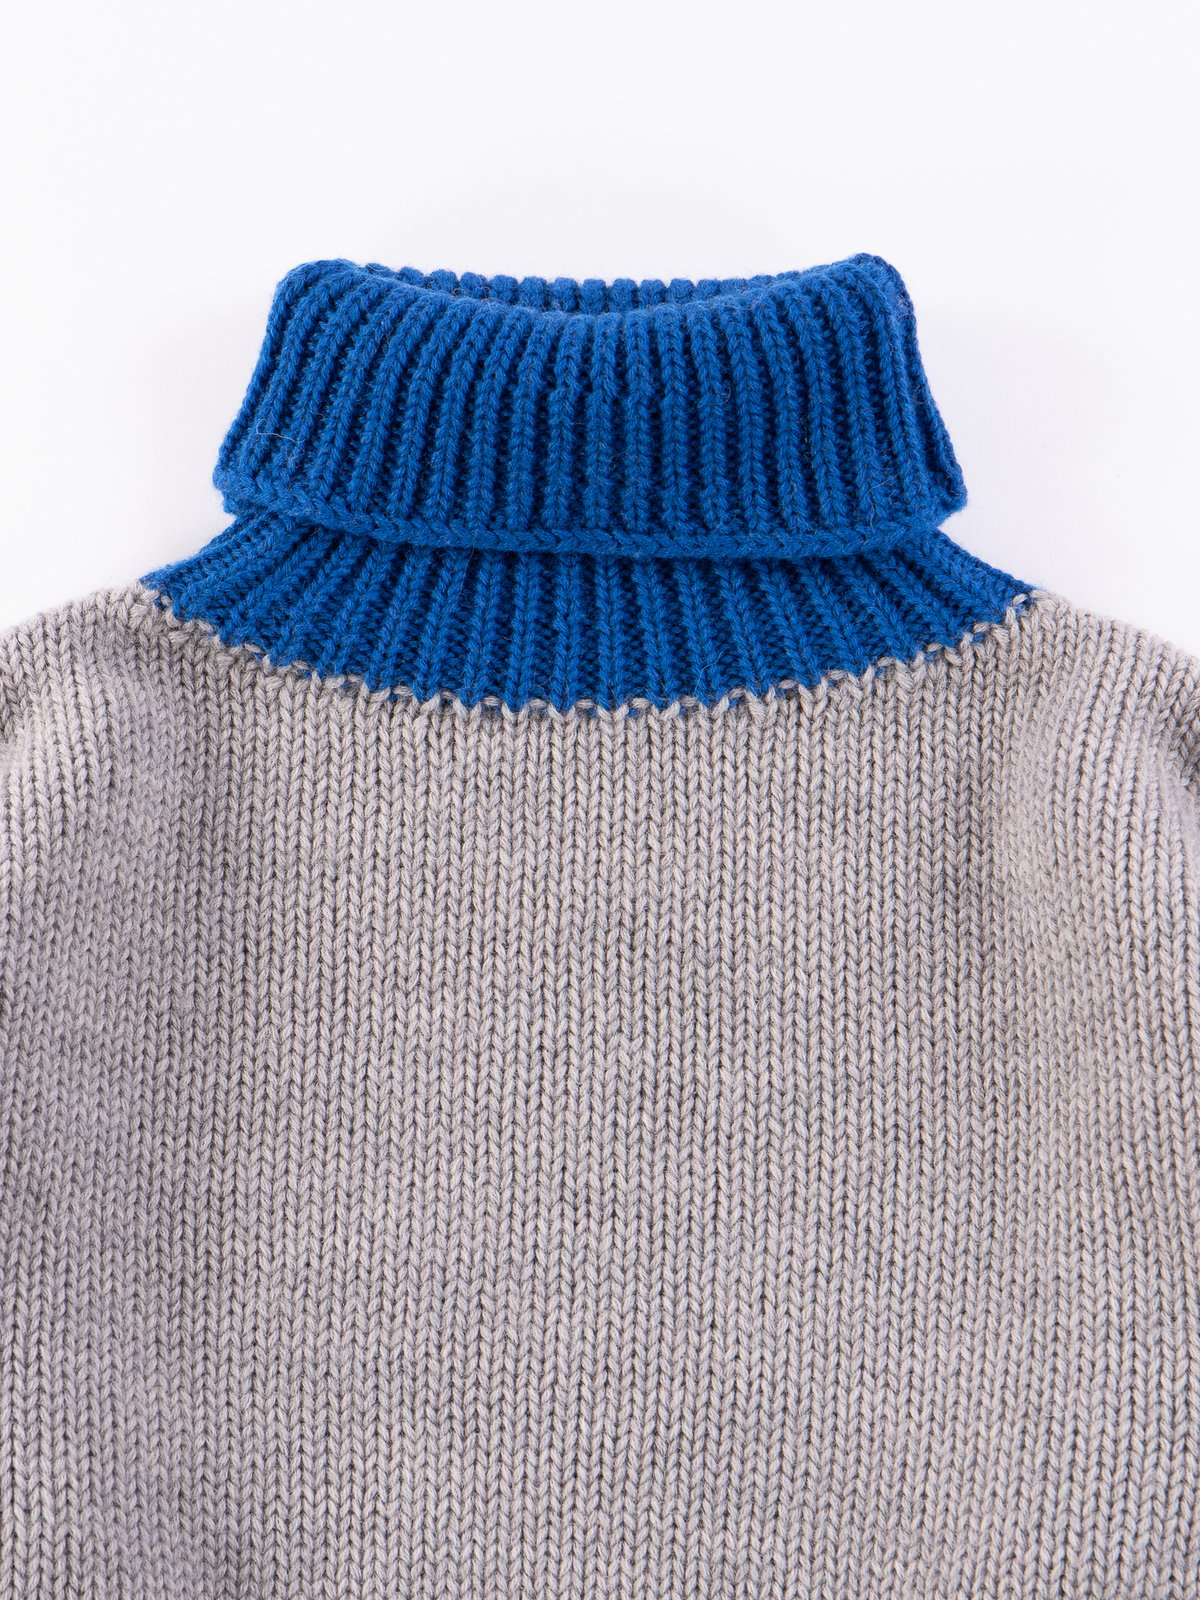 Grey/Navy/Blue George Lowe Roll Neck - Image 3